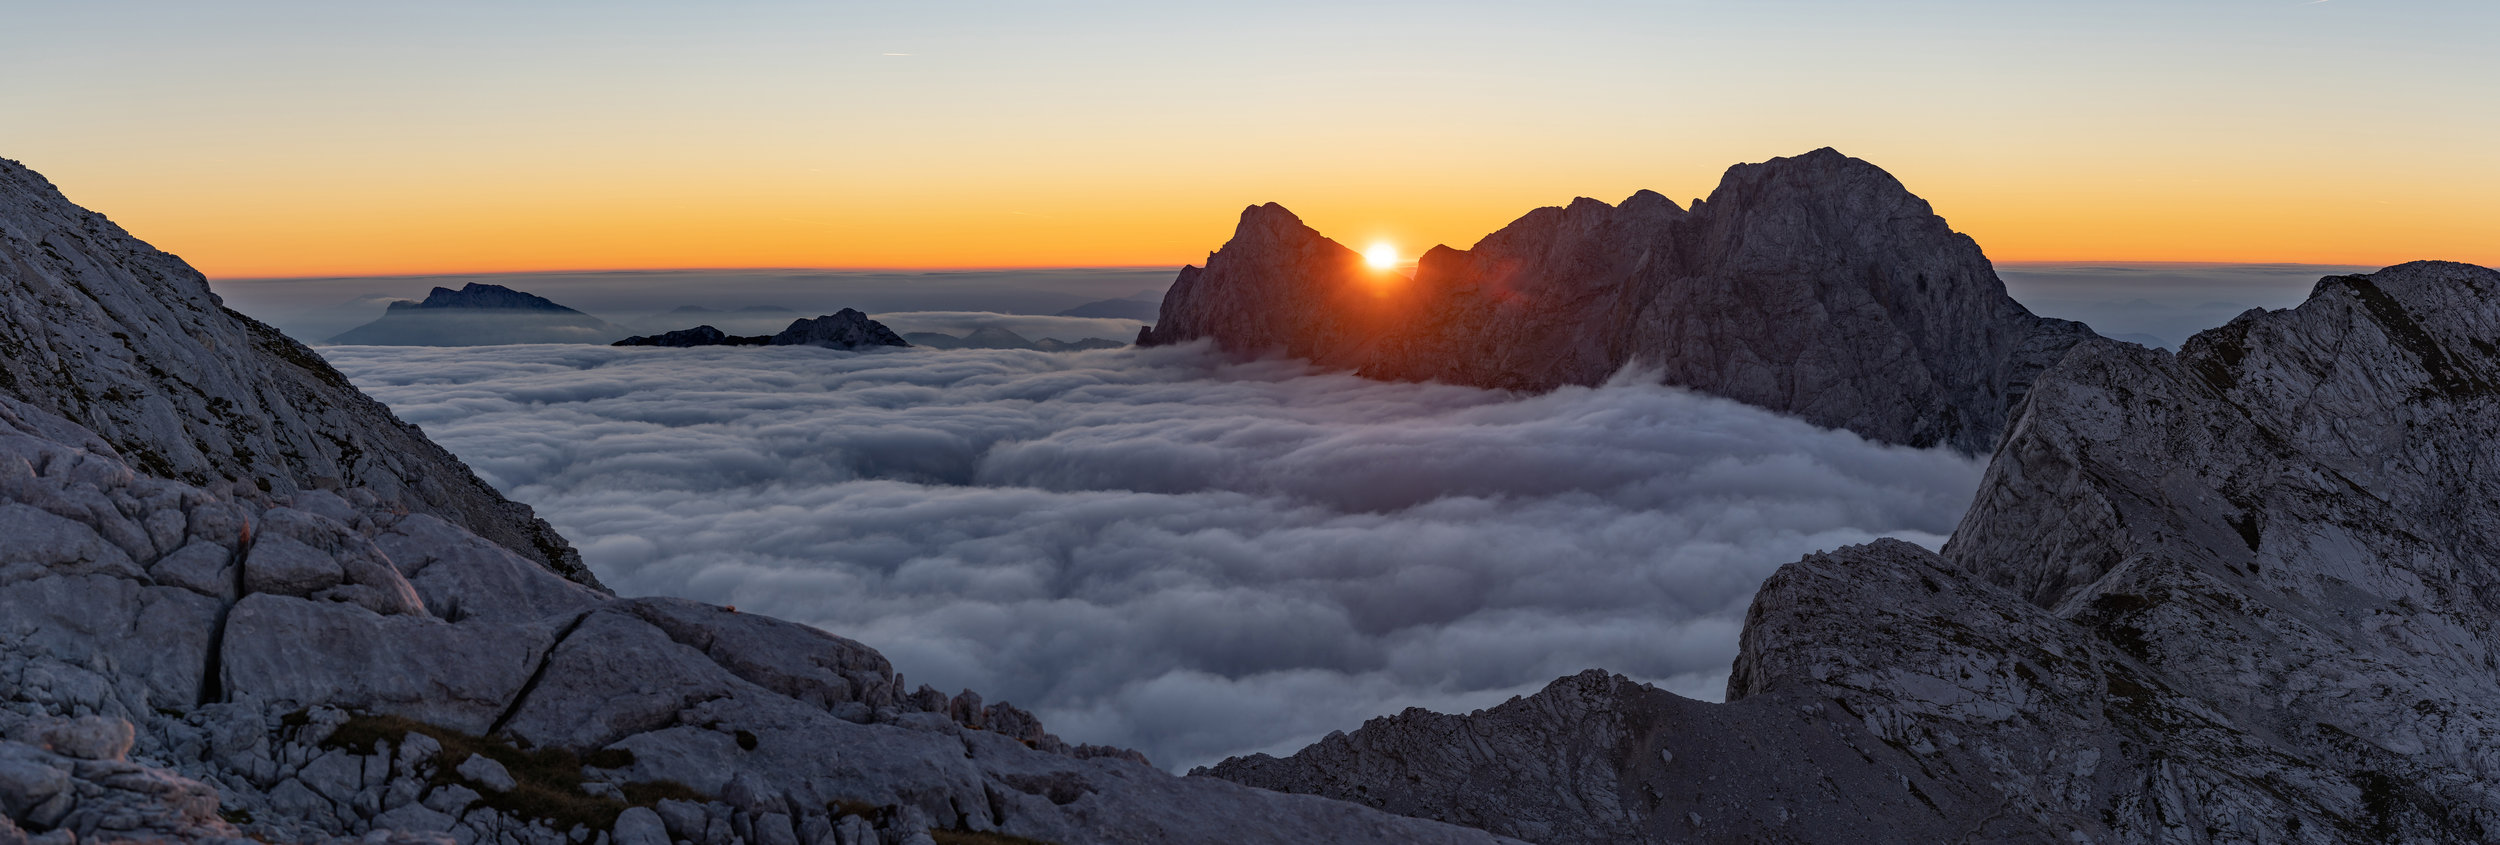 Fog in the Logar Valley and sunrise behid Mt. Ojstrica (2350 m) in the Kamnik-Savinja Alps.